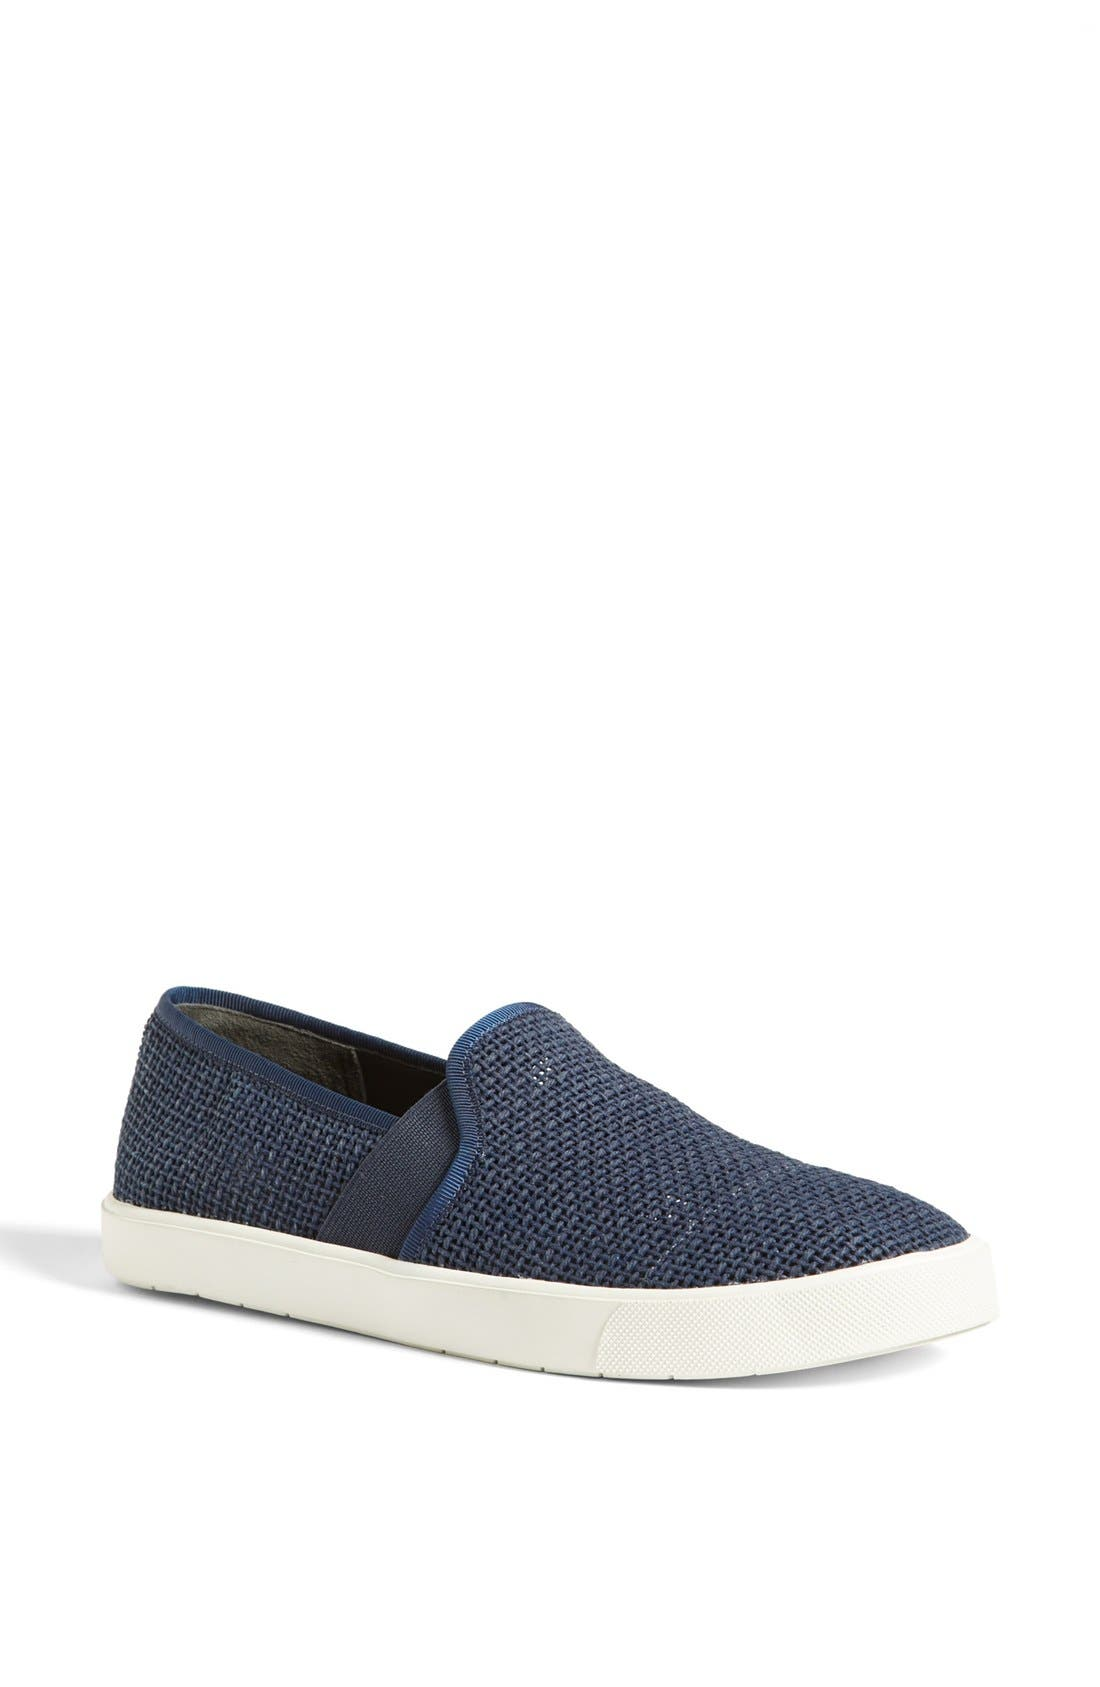 Main Image - Vince 'Preston' Slip-On Sneaker